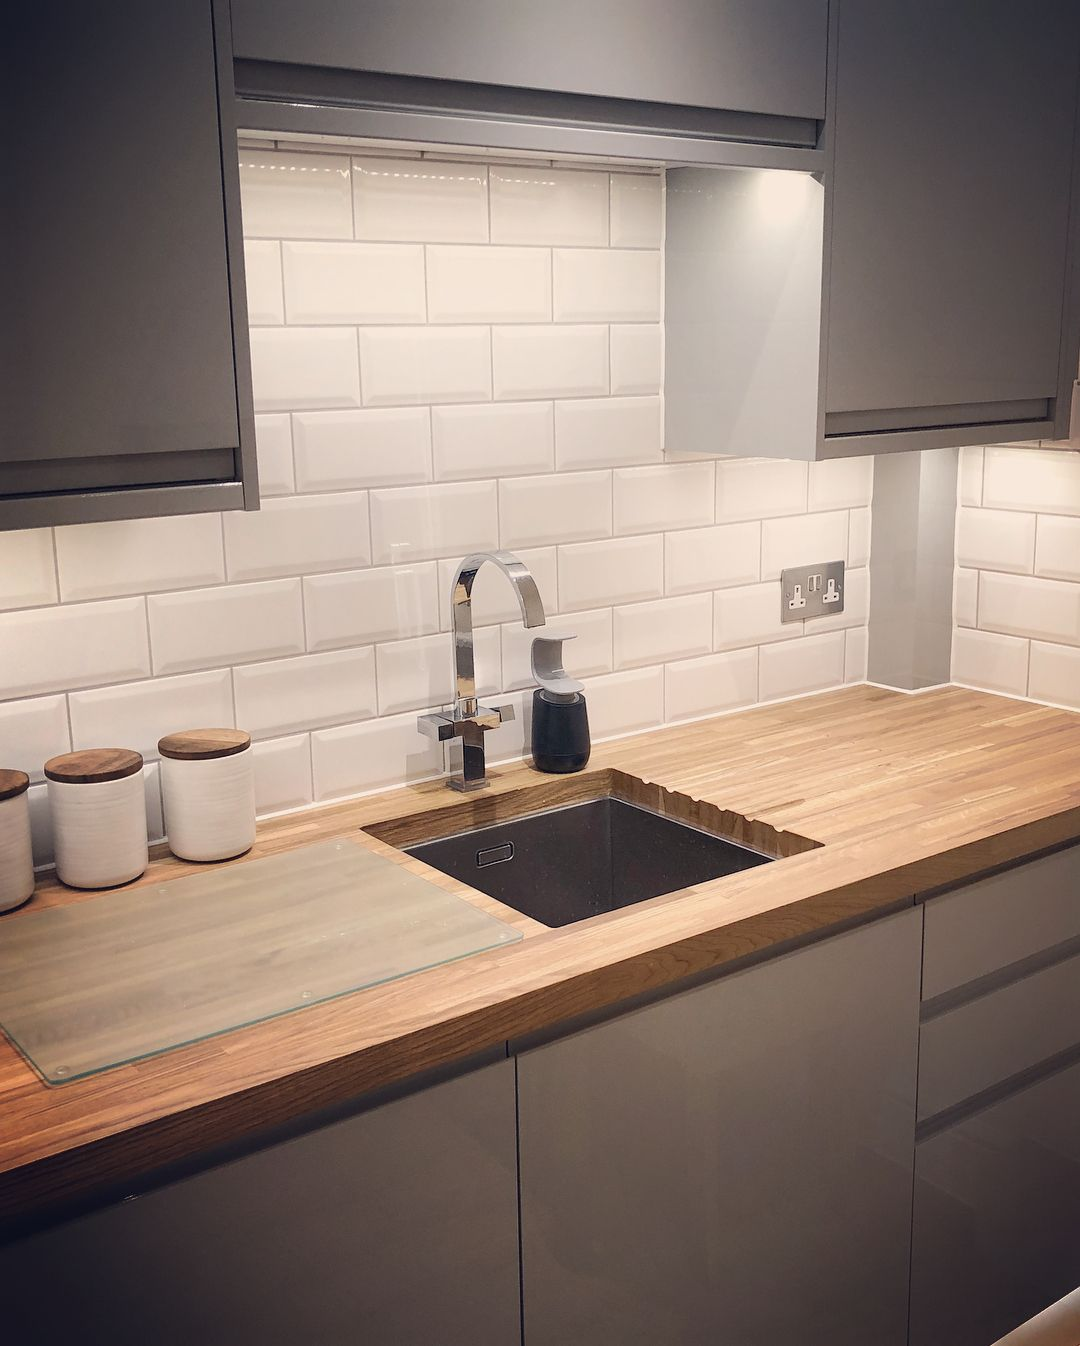 Grey Gloss Kitchen Howdens: Finally, Our New Kitchen! Gloss Grey Handleless